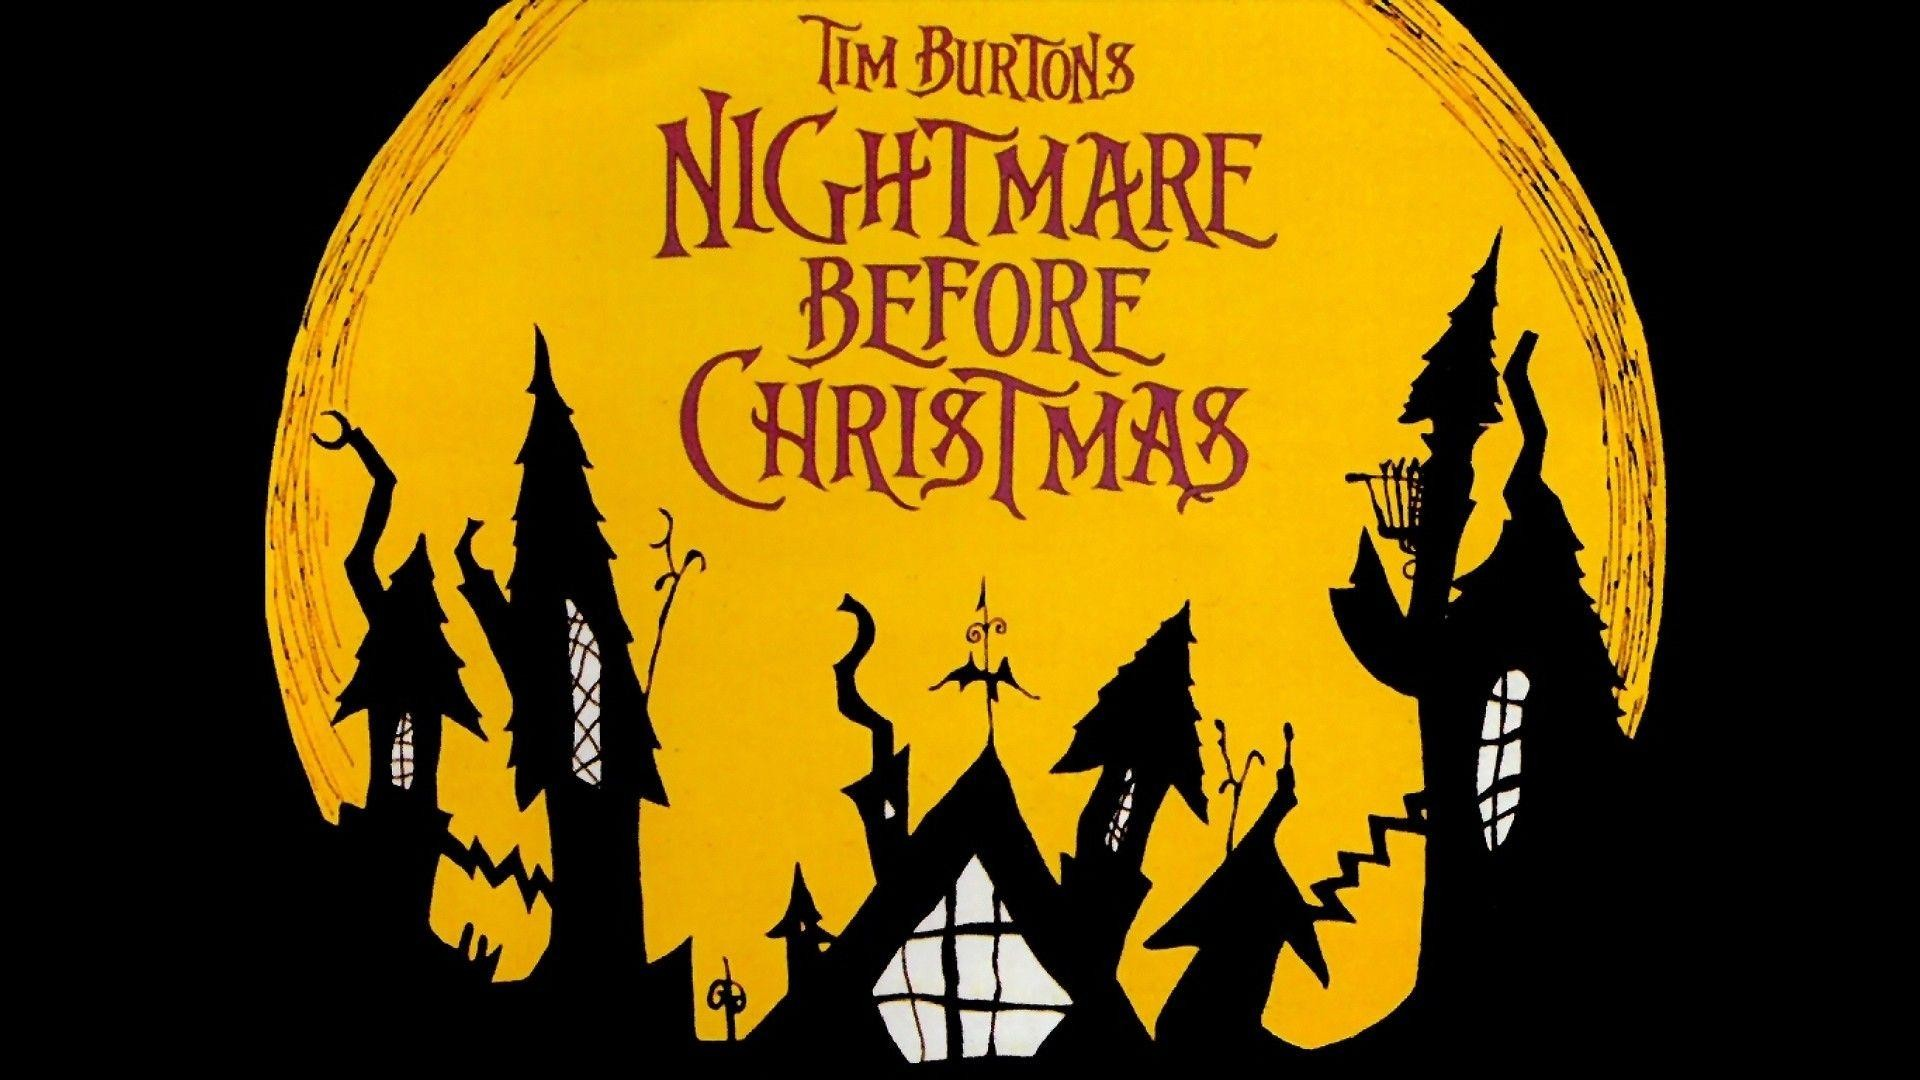 … nightmare before christmas wallpapers hd wallpaper cave …